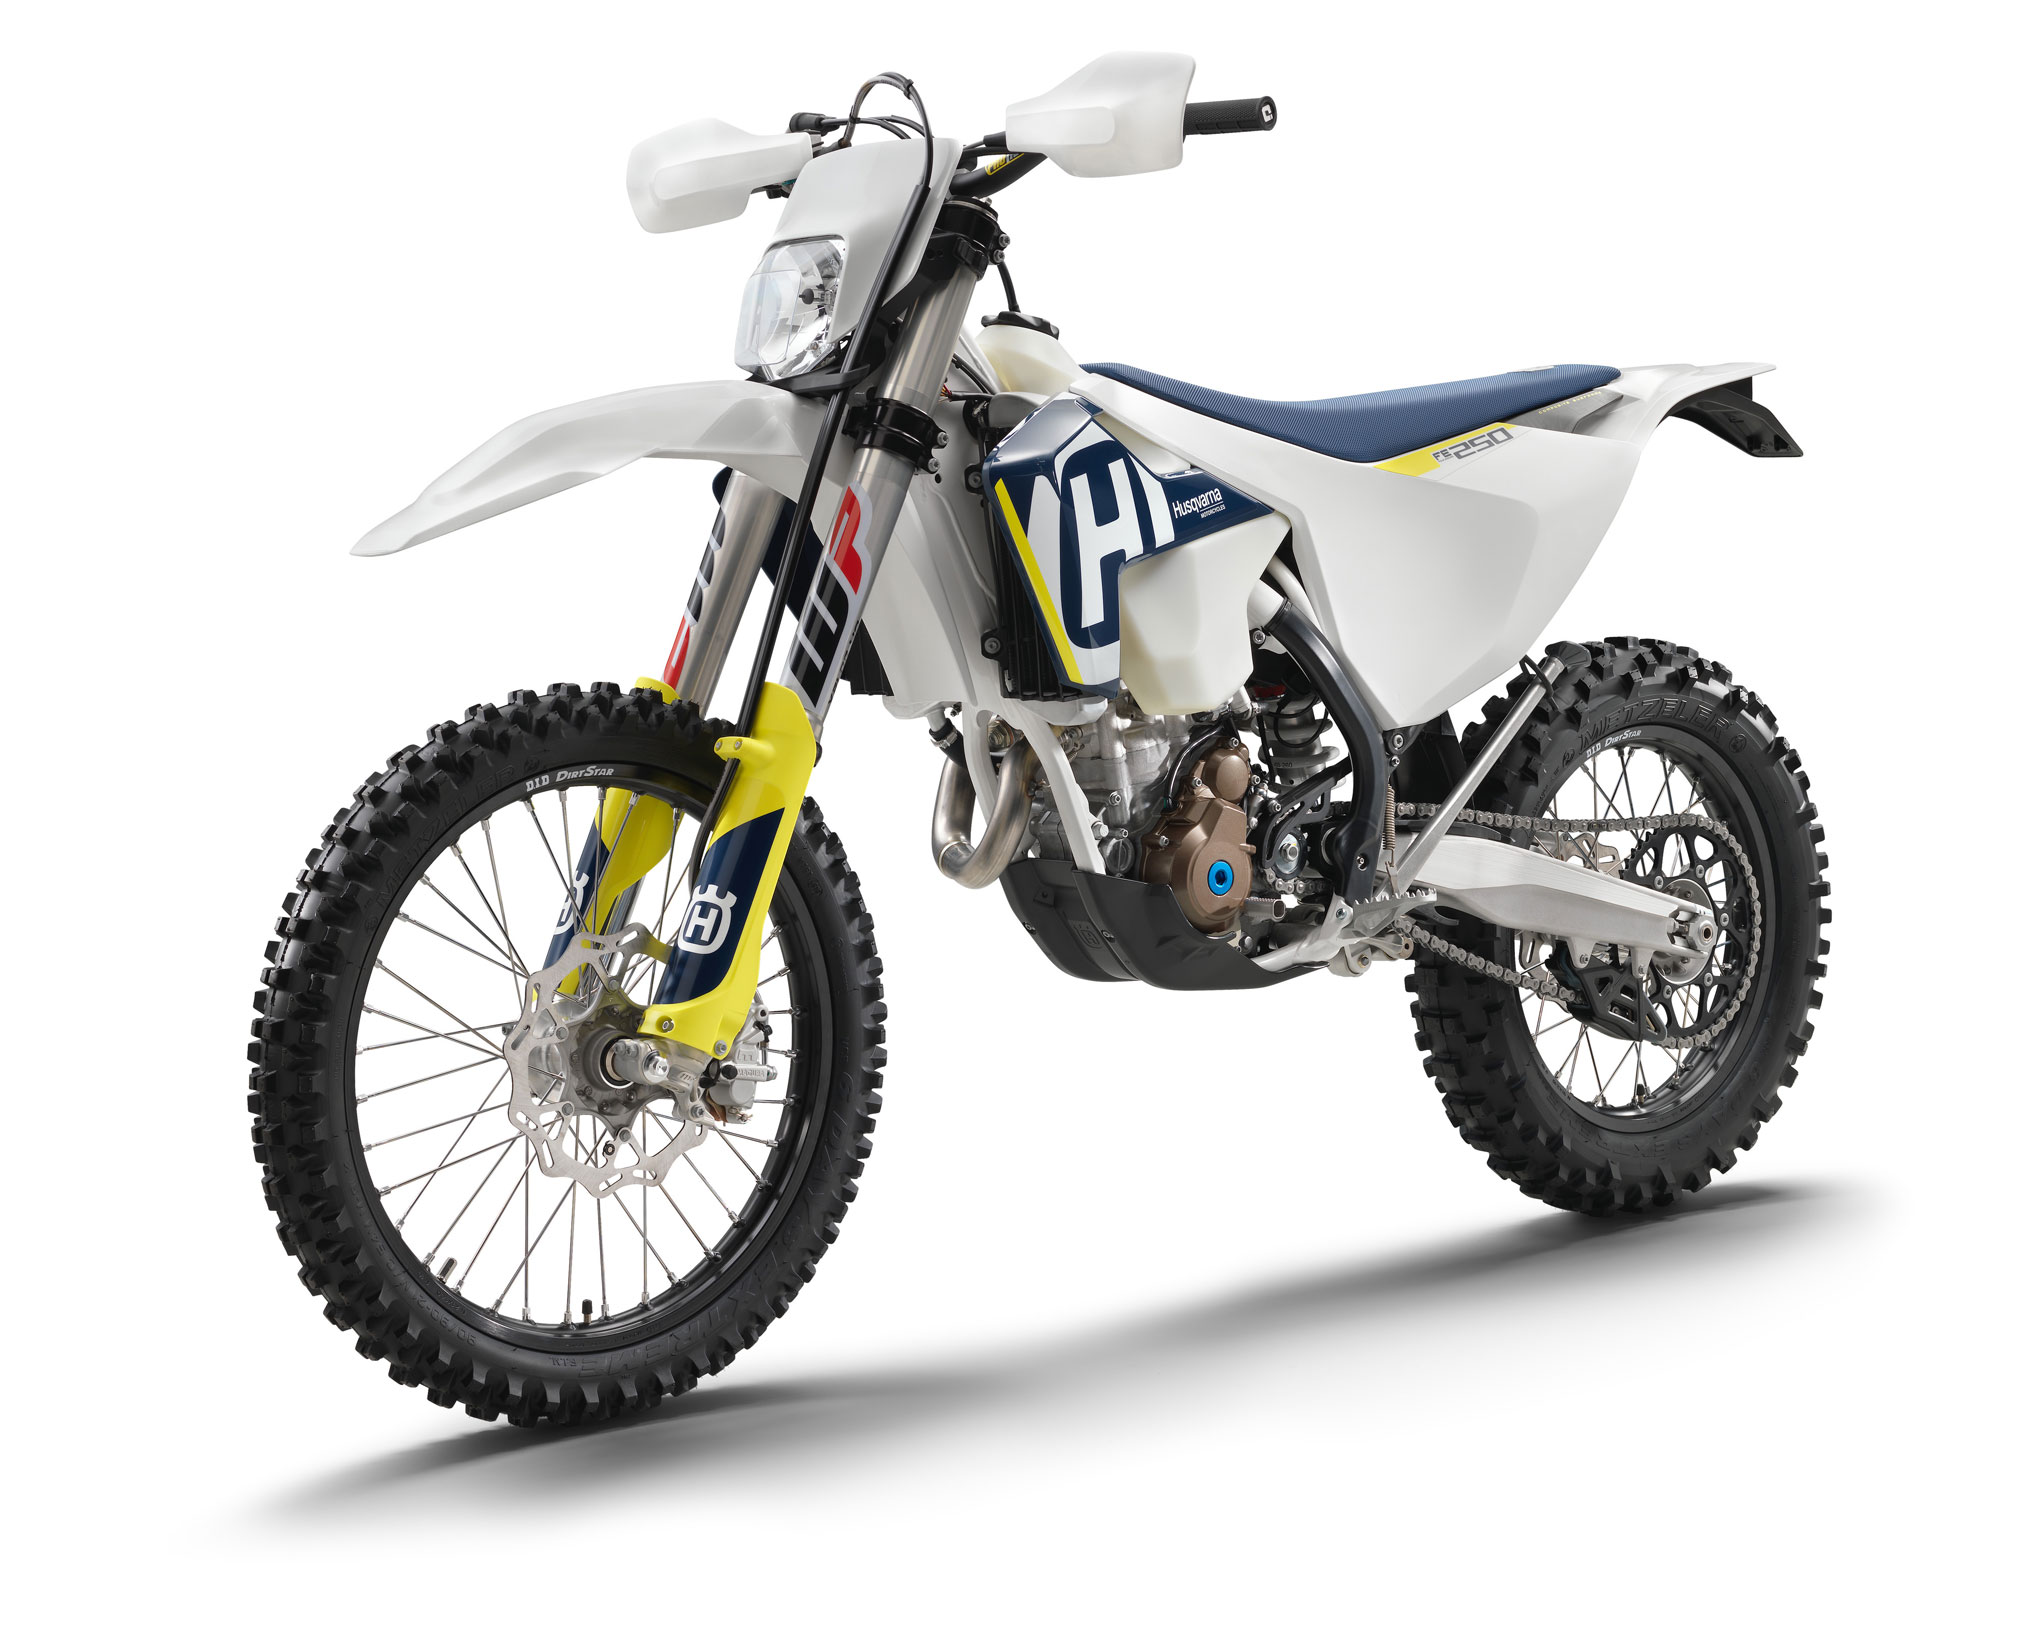 2018 Husqvarna Fe250 Review Totalmotorcycle